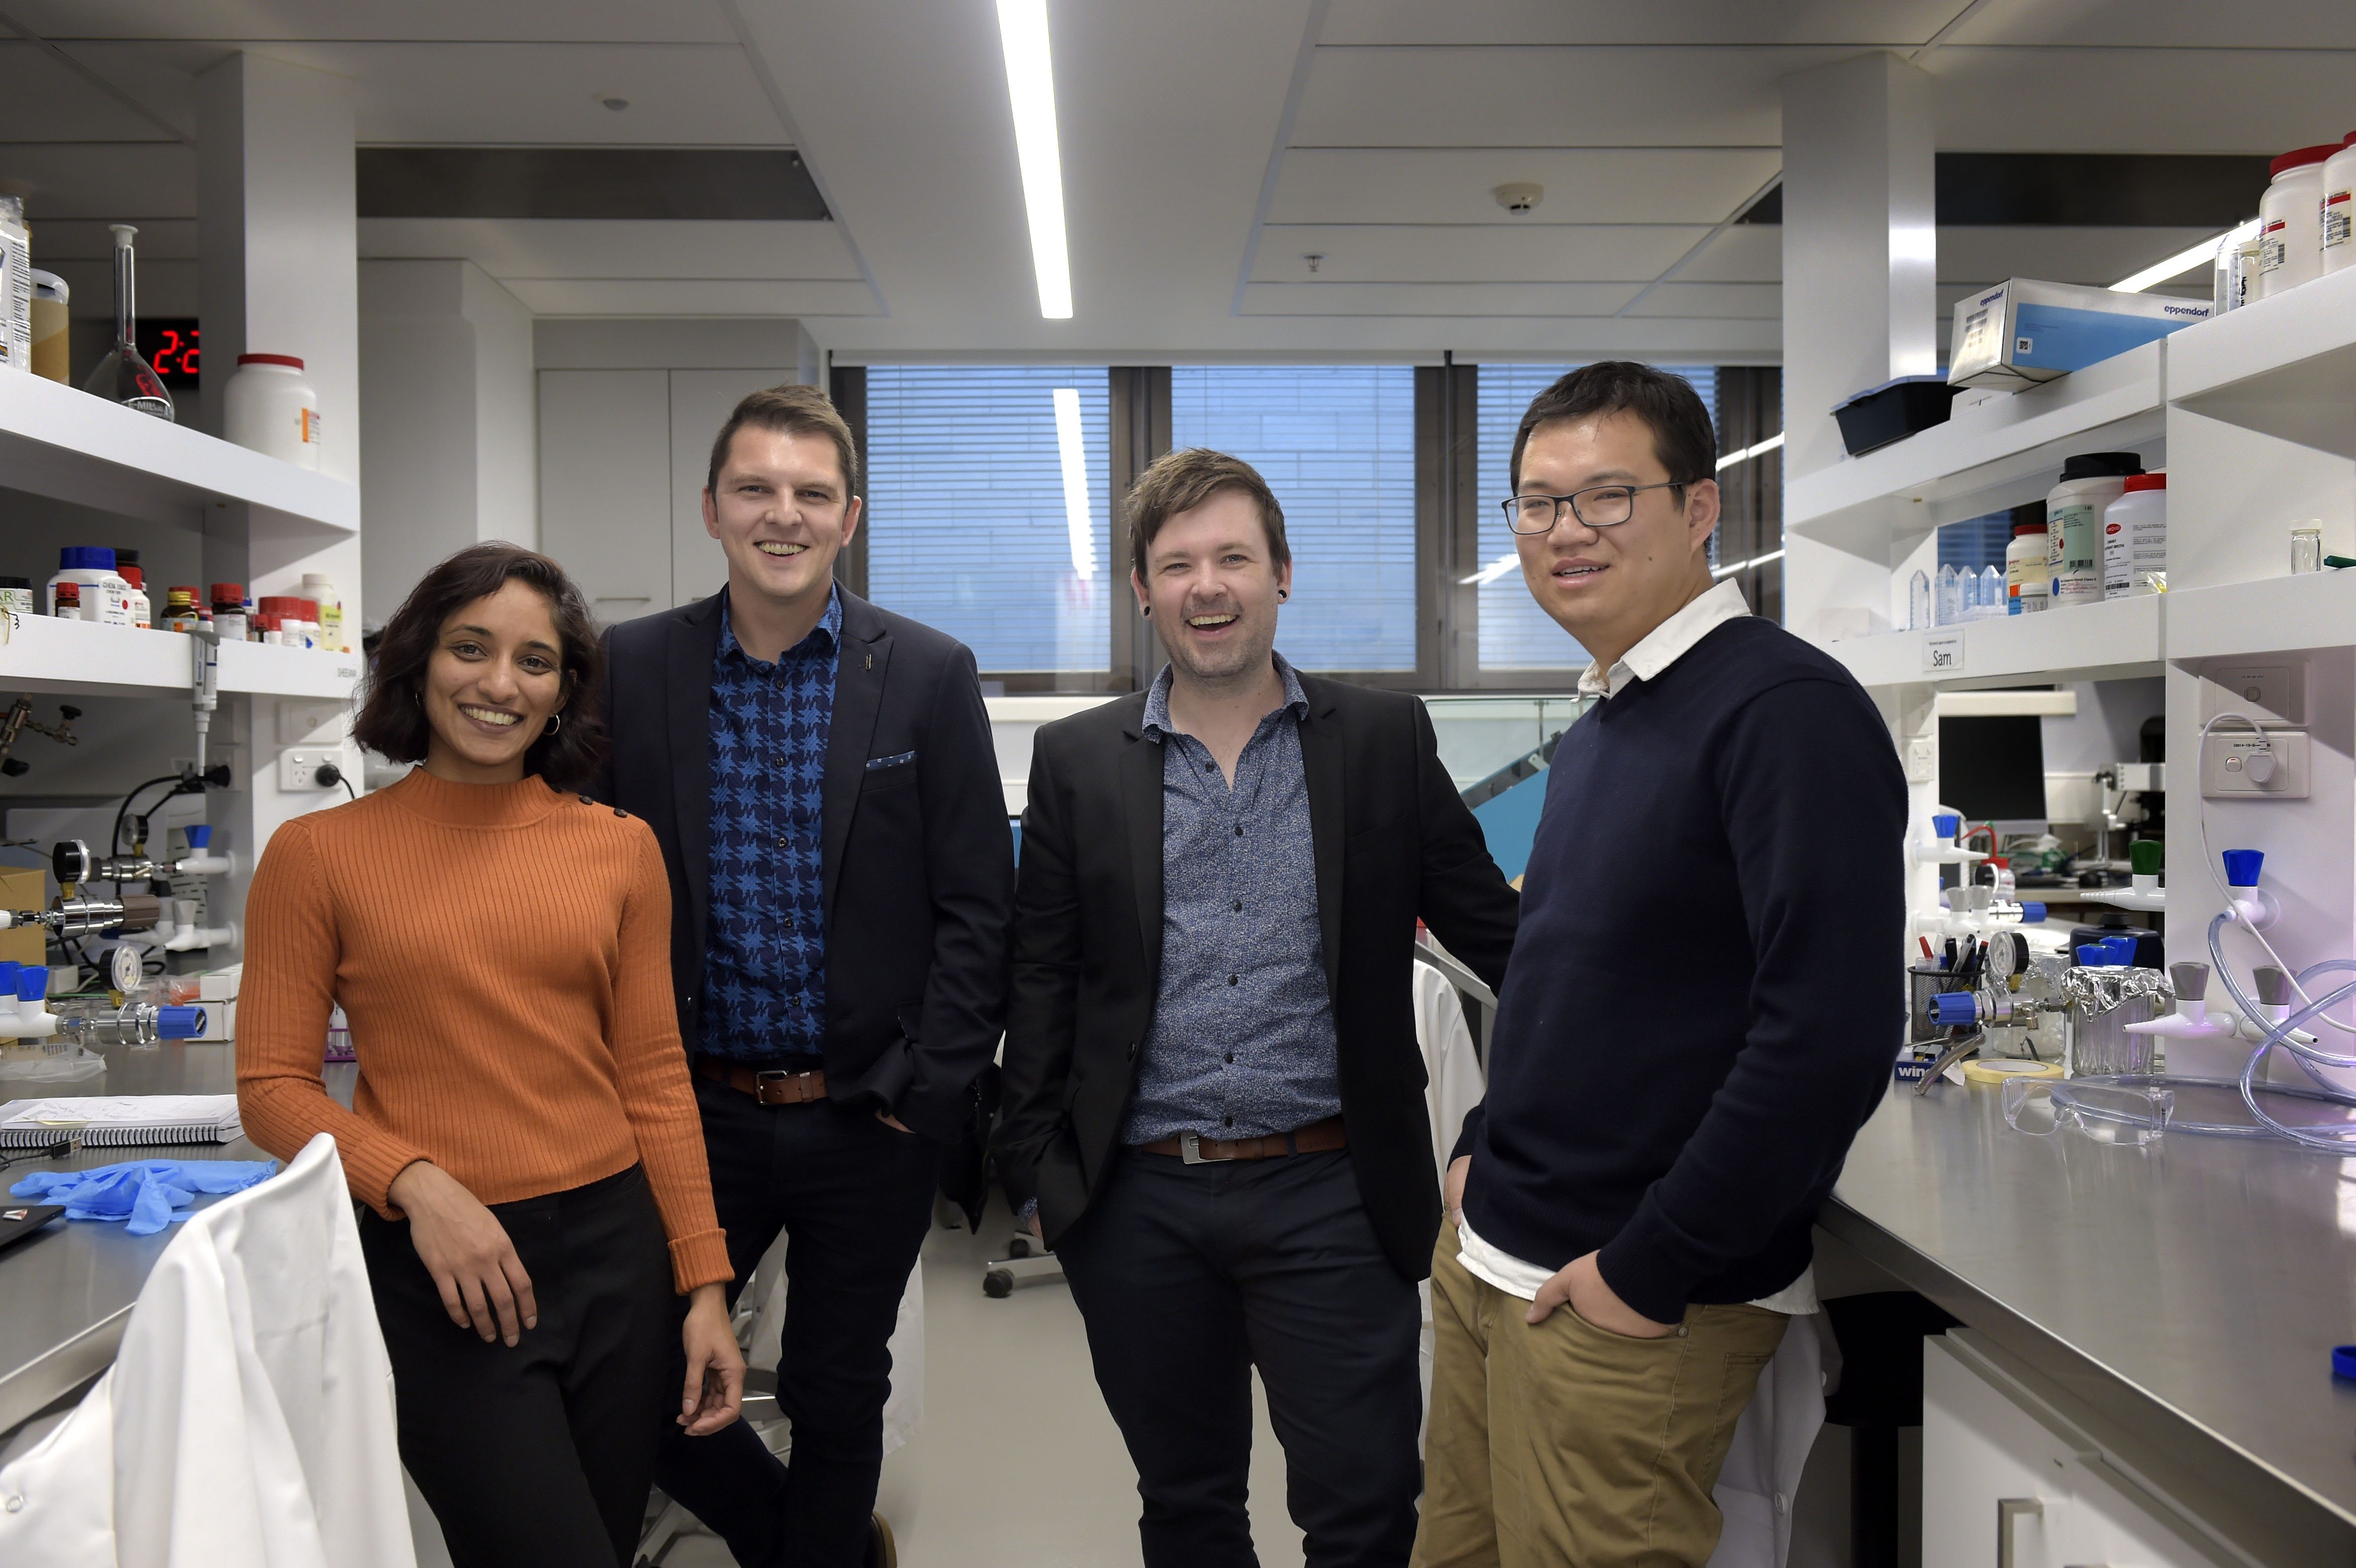 (L-R) PhD researcher Sheeana Gangadoo, Dr James Chapman, Dr Aaron Elbourne and Dr Vi Khanh Truong.